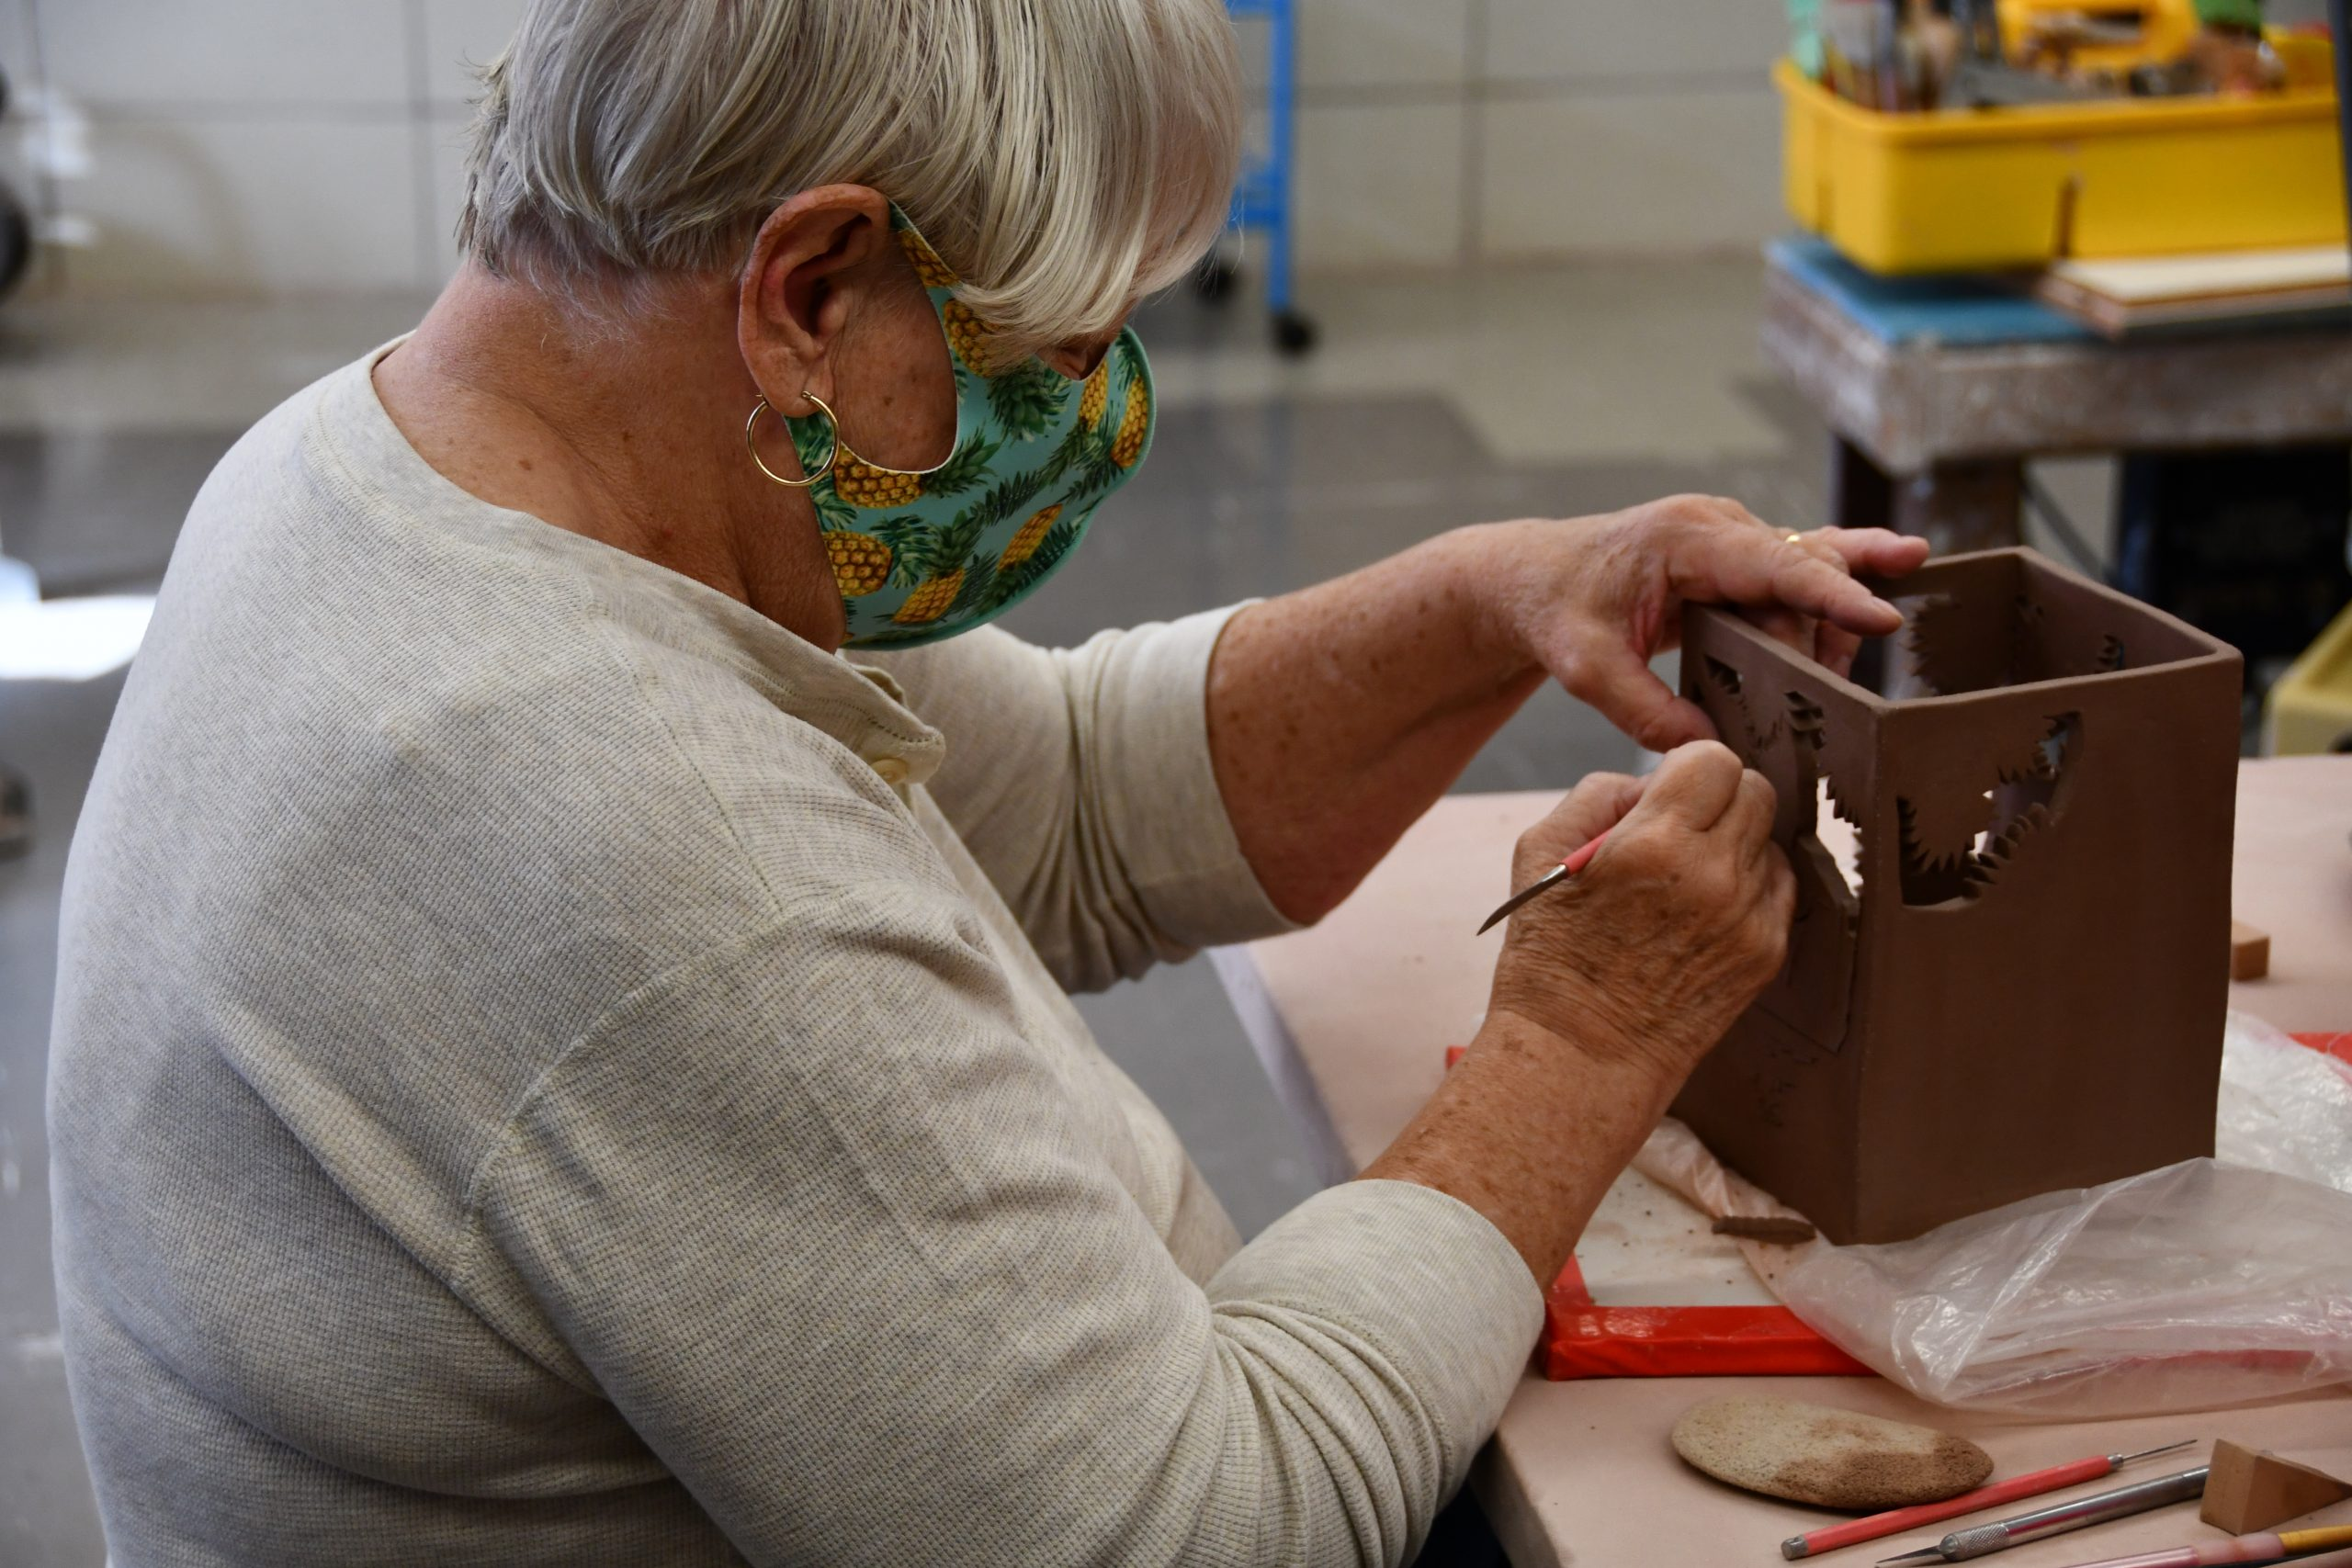 woman doing ceramics